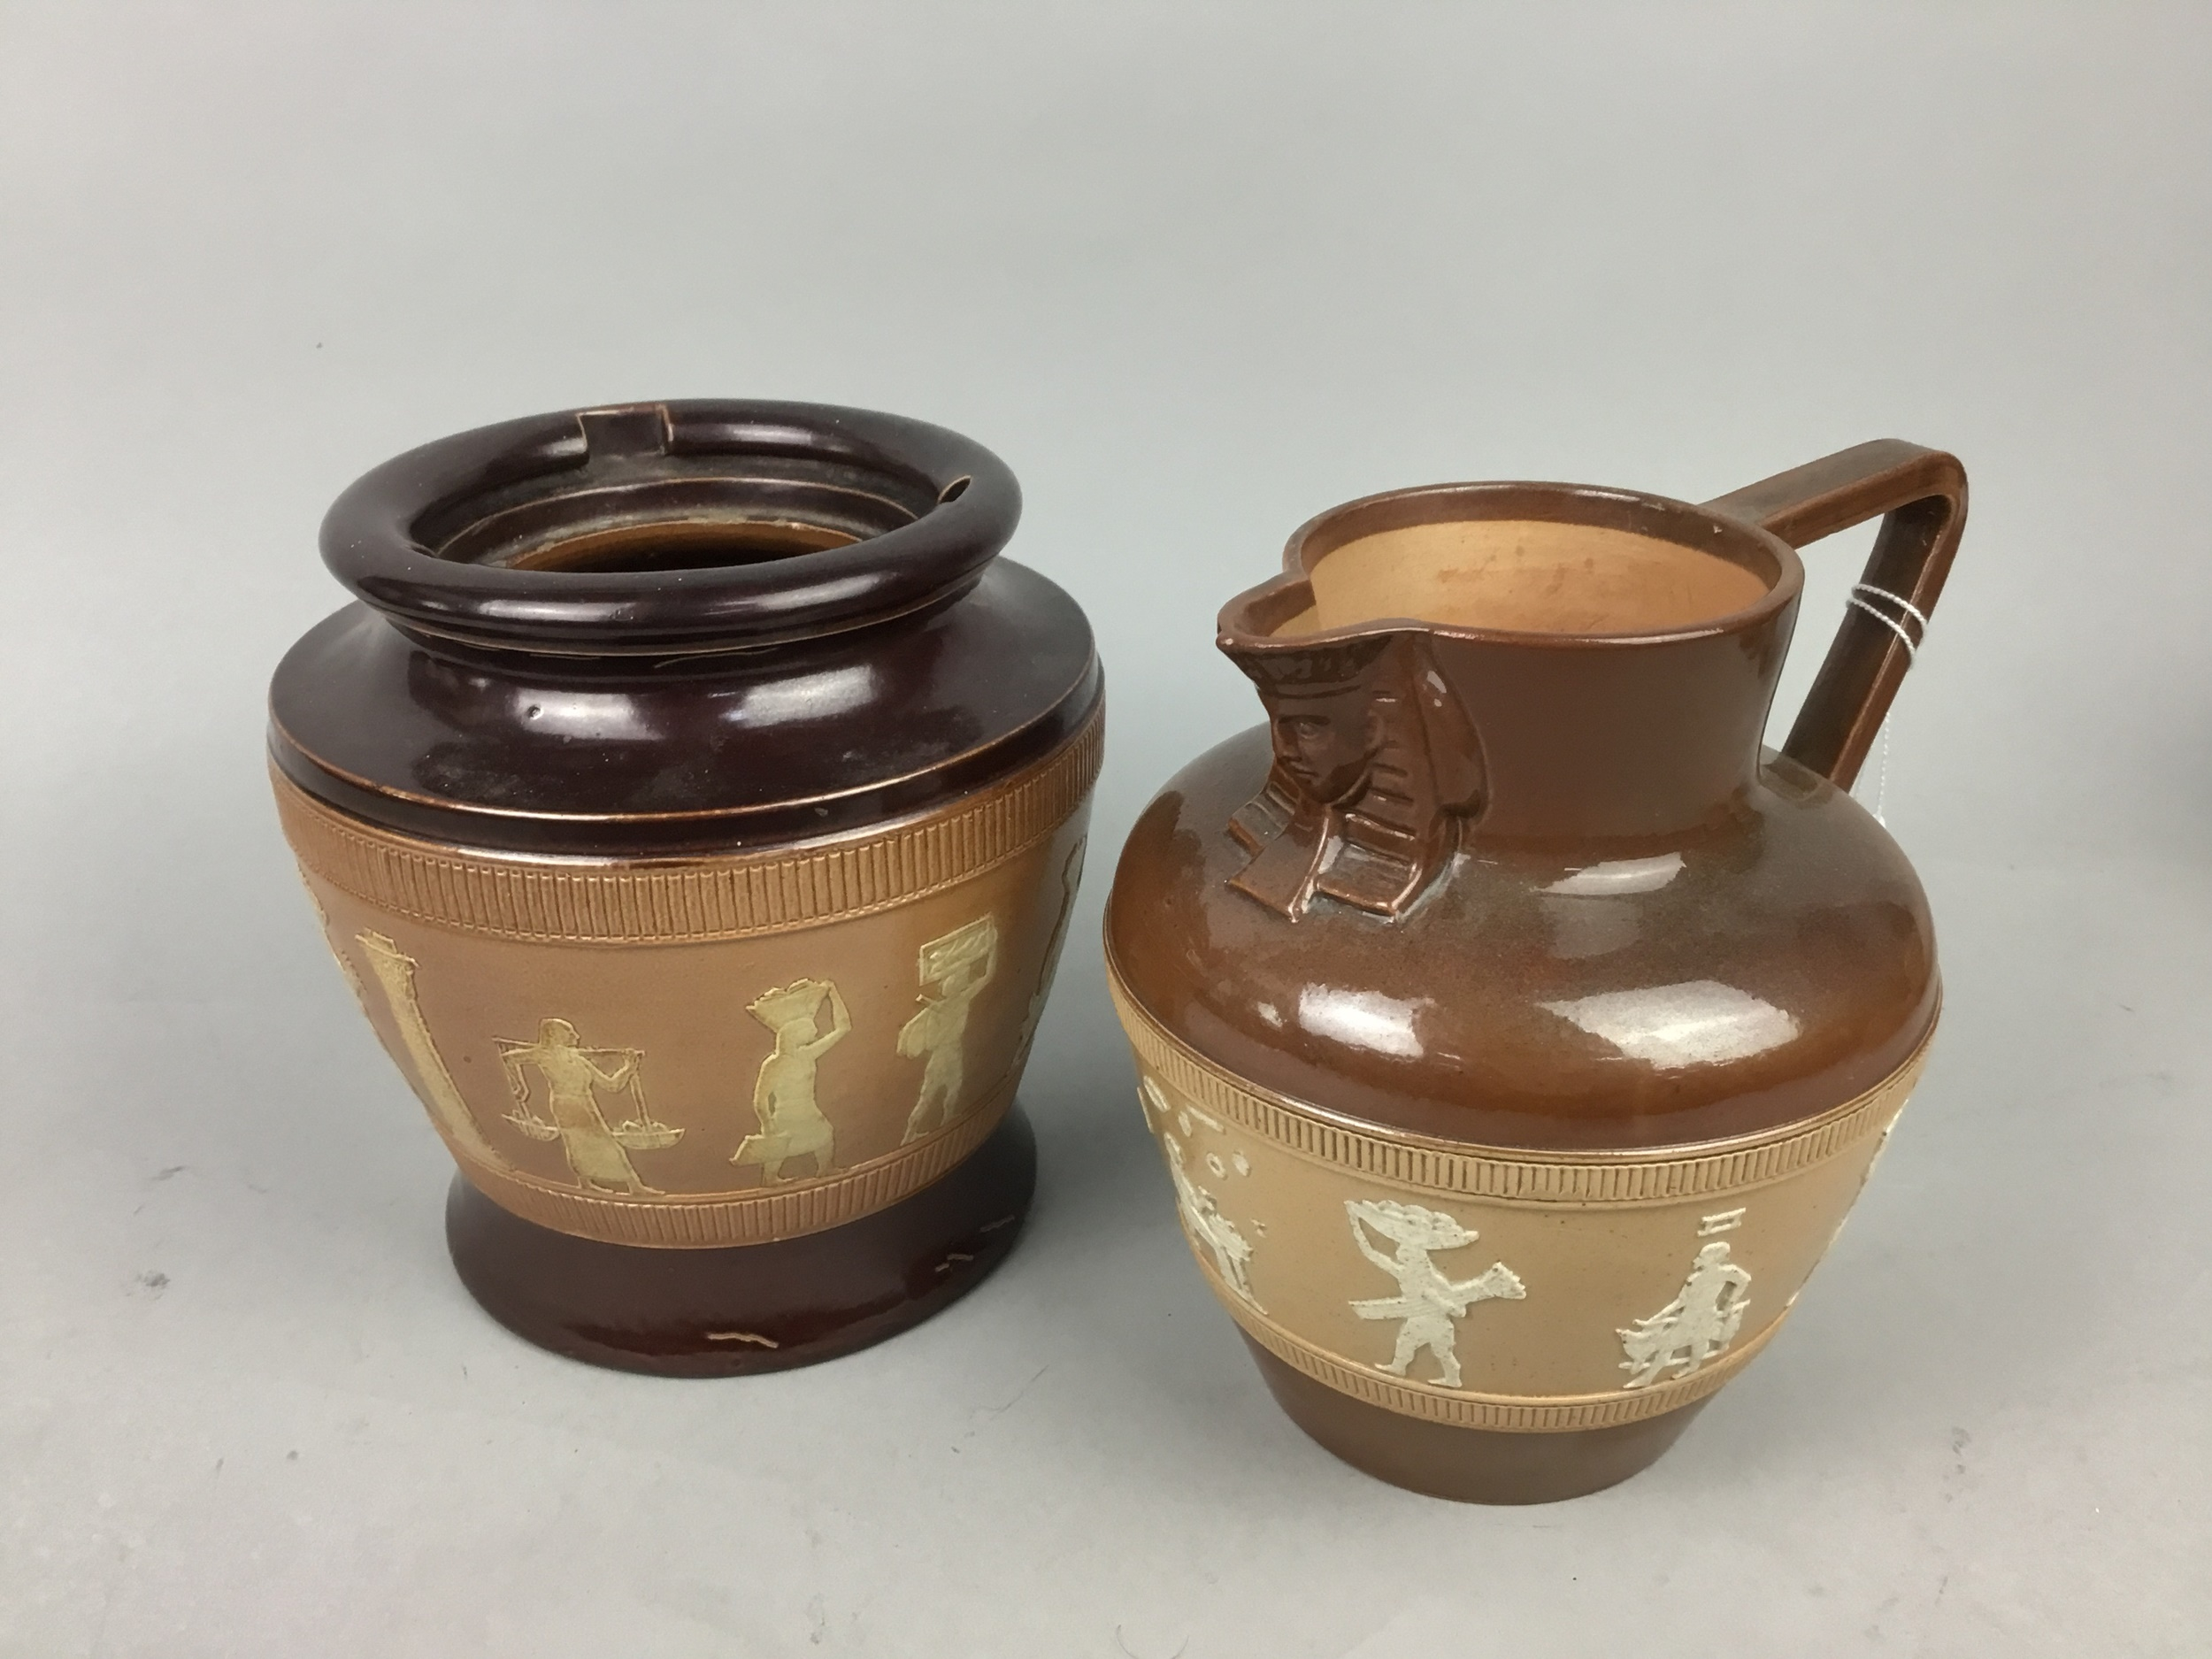 A ROYAL DOULTON EGYPTIAN REVIVAL JUG AND OTHER ITEMS